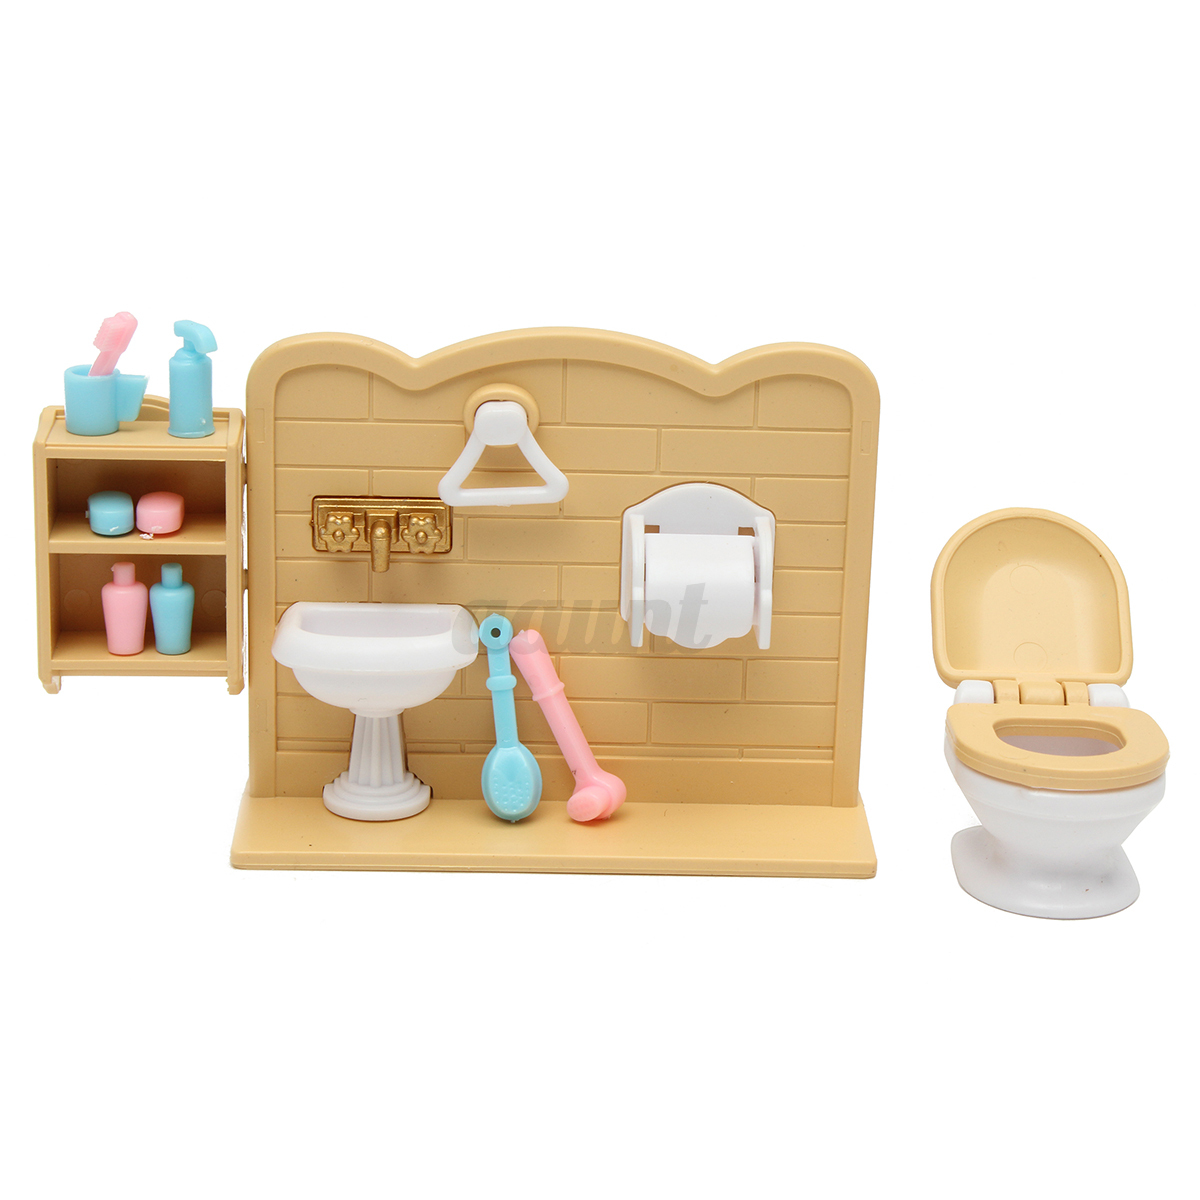 Plastic Bathtub Toilet Miniature Doll House Furniture Toy Set Bathroom Decor Auctions Buy And